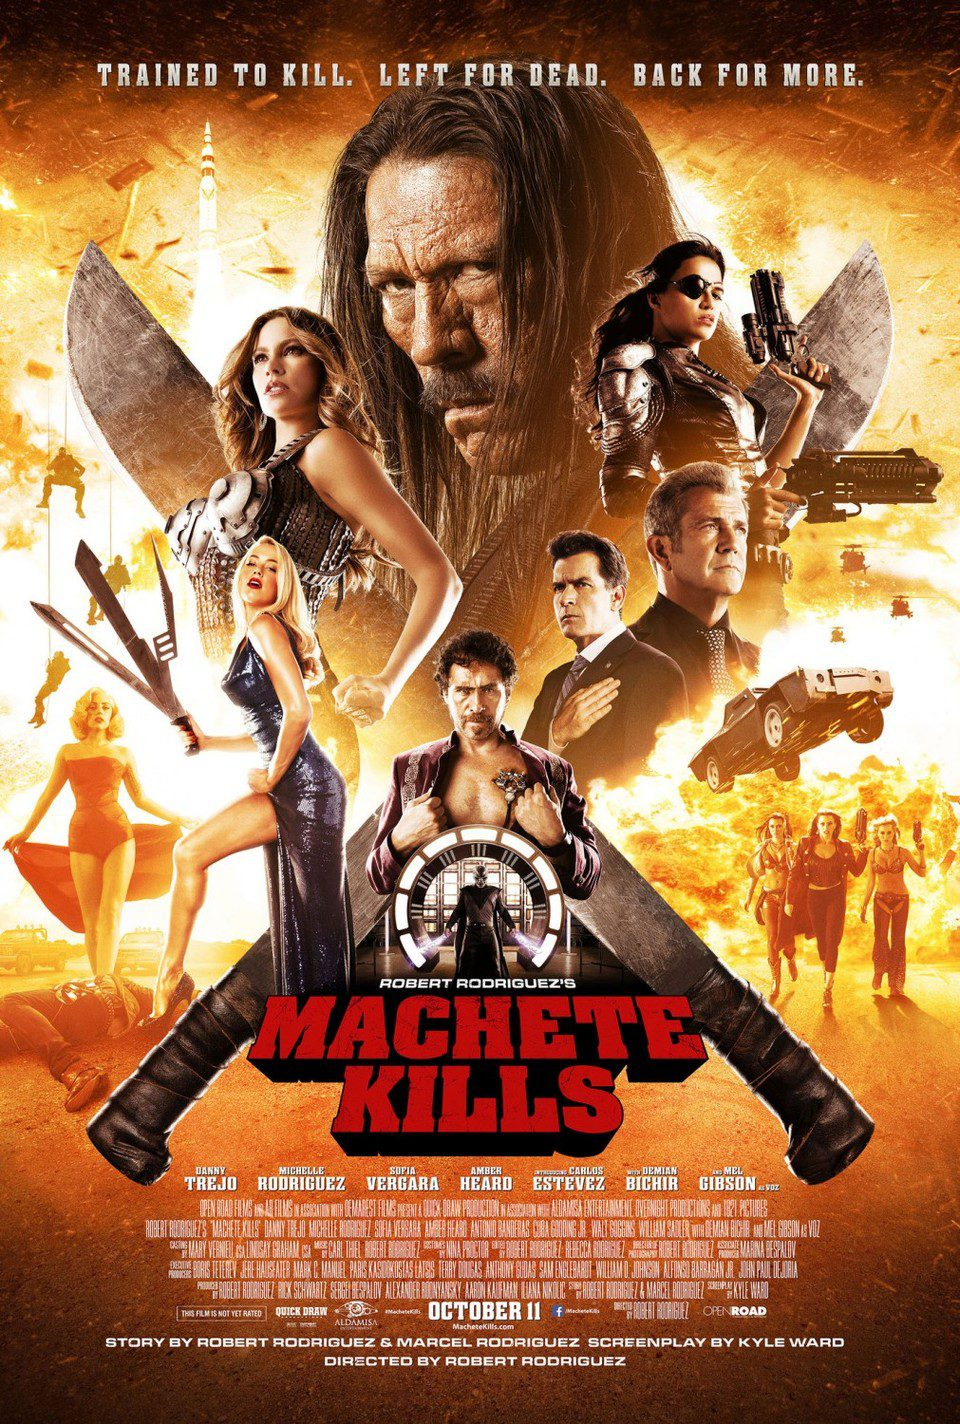 machete kills, critica, cine, blog soloyo